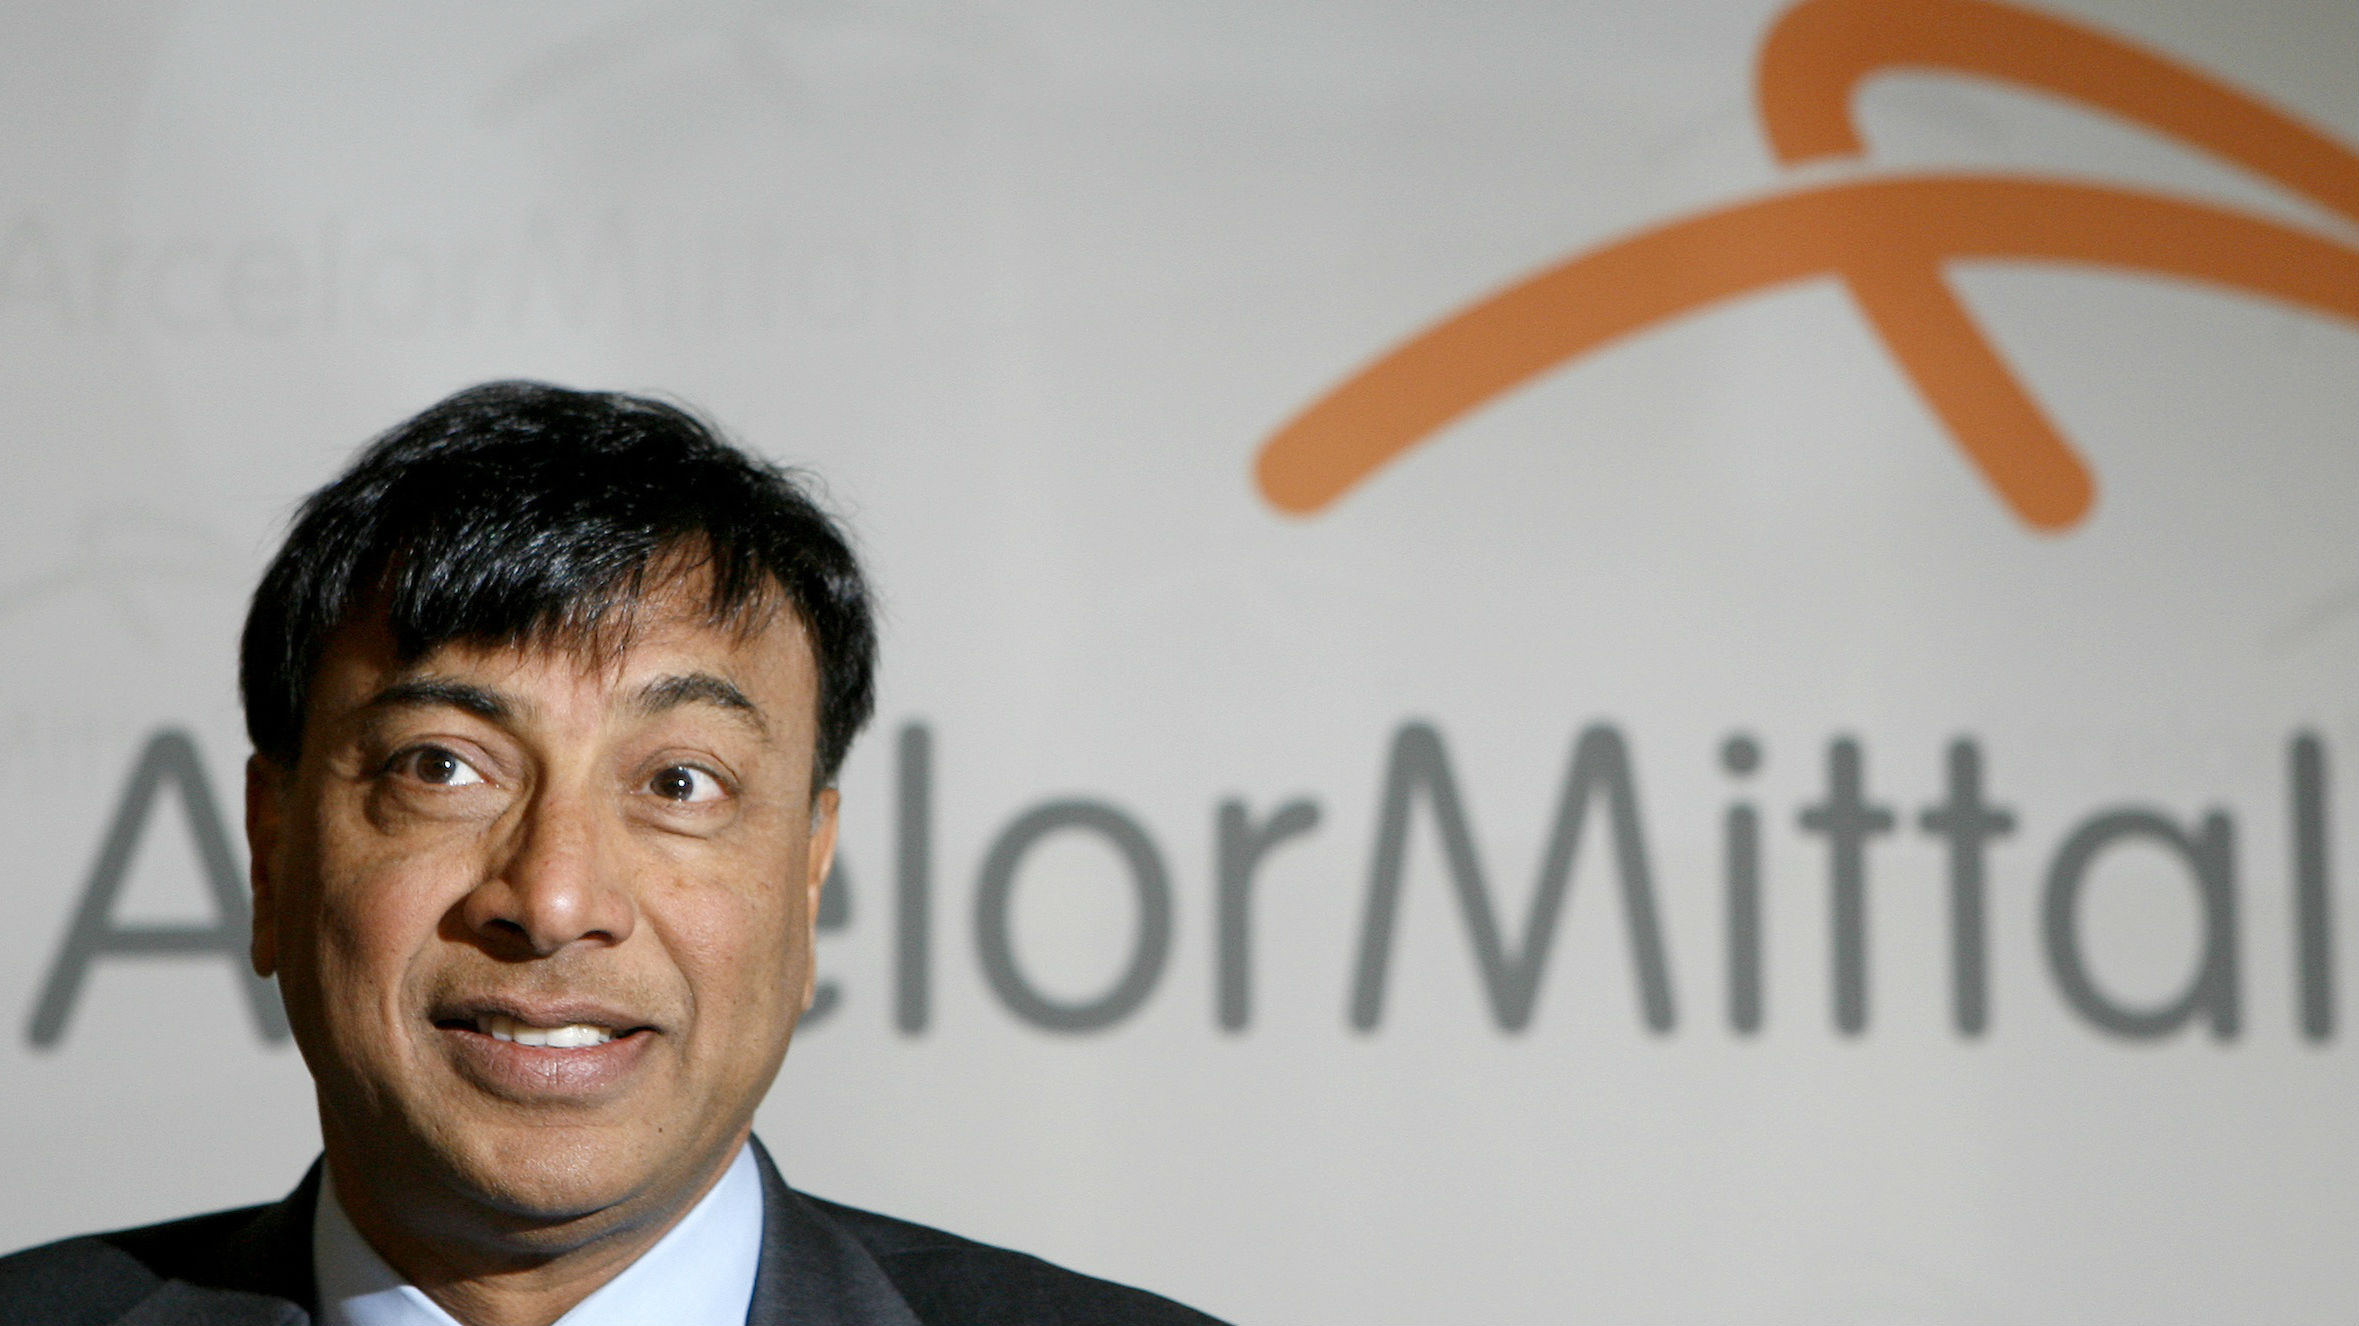 Chairman and Chief Executive Officer Lakshmi Mittal presents the year 2007 results of Arcelor Mittal steel group during a news conference in Luxembourg February 13, 2008. ArcelorMittal, the world's largest steelmaker, reported 2007 results in line with expectations on Wednesday.